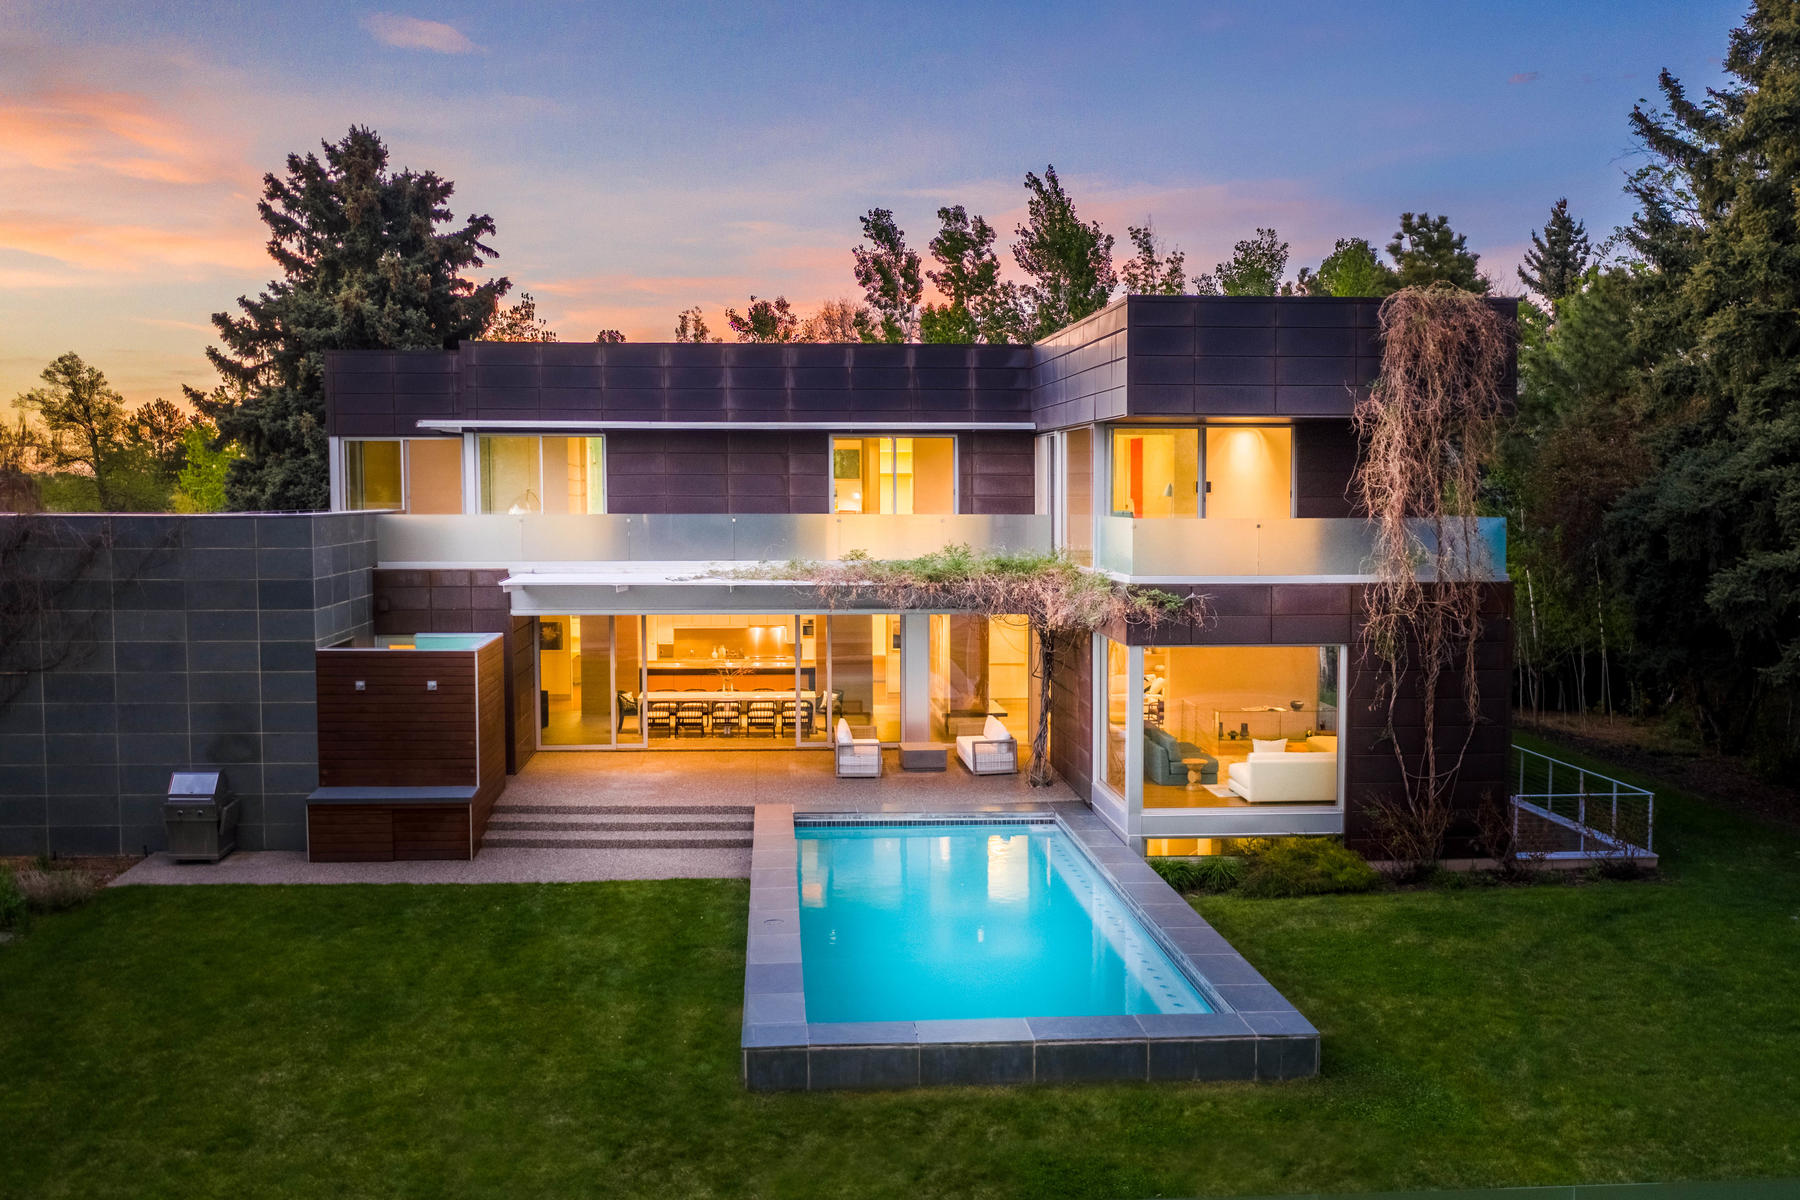 Single Family Homes for Sale at Spectacular Home in the Heart of Belcaro on Almost Half-Acre. 950 S Steele Street Denver, Colorado 80209 United States